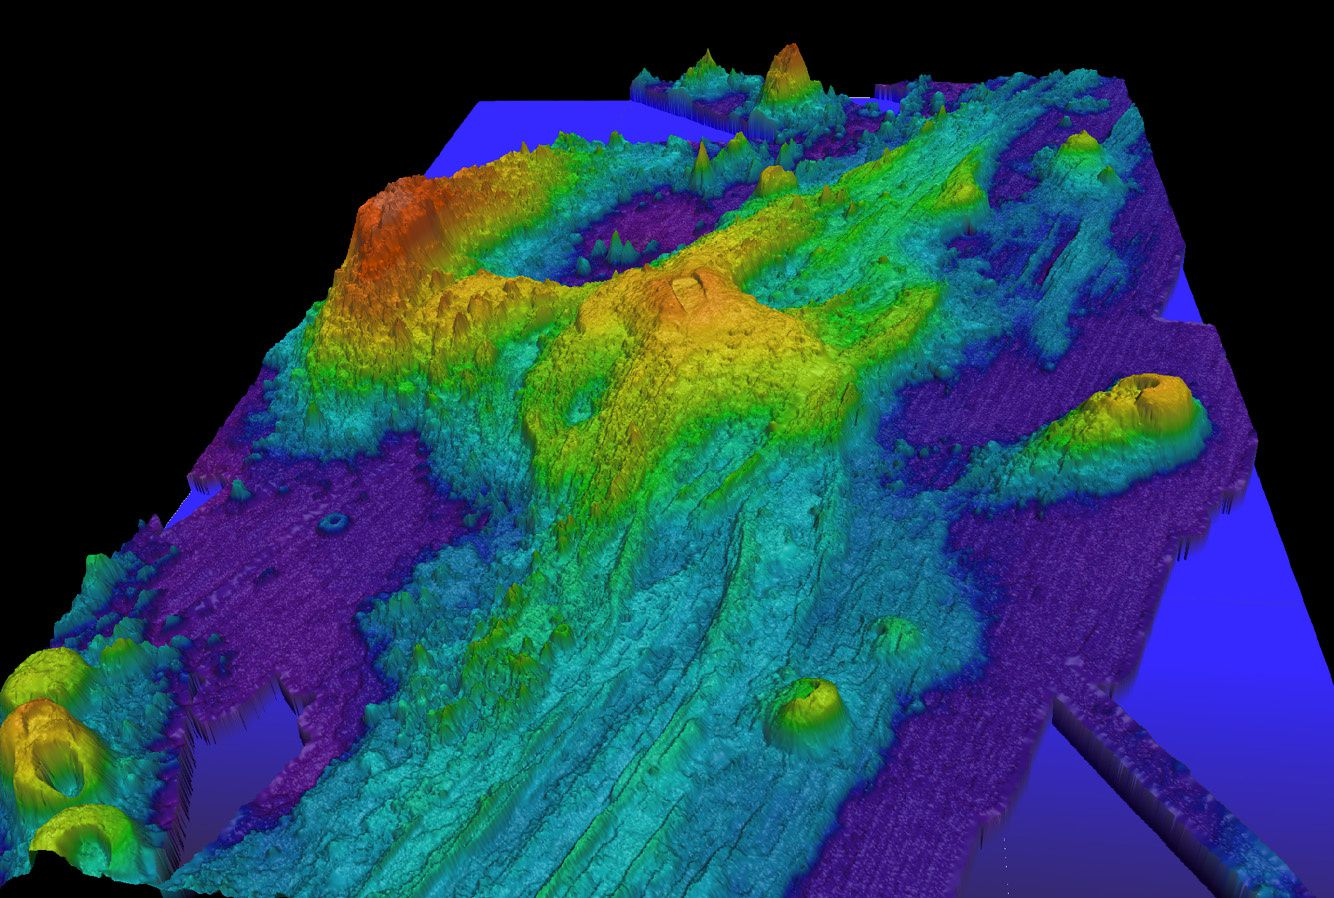 Axial Seamont - bathymetry (exaggerated) of the submarine volcano - Doc. NOAA